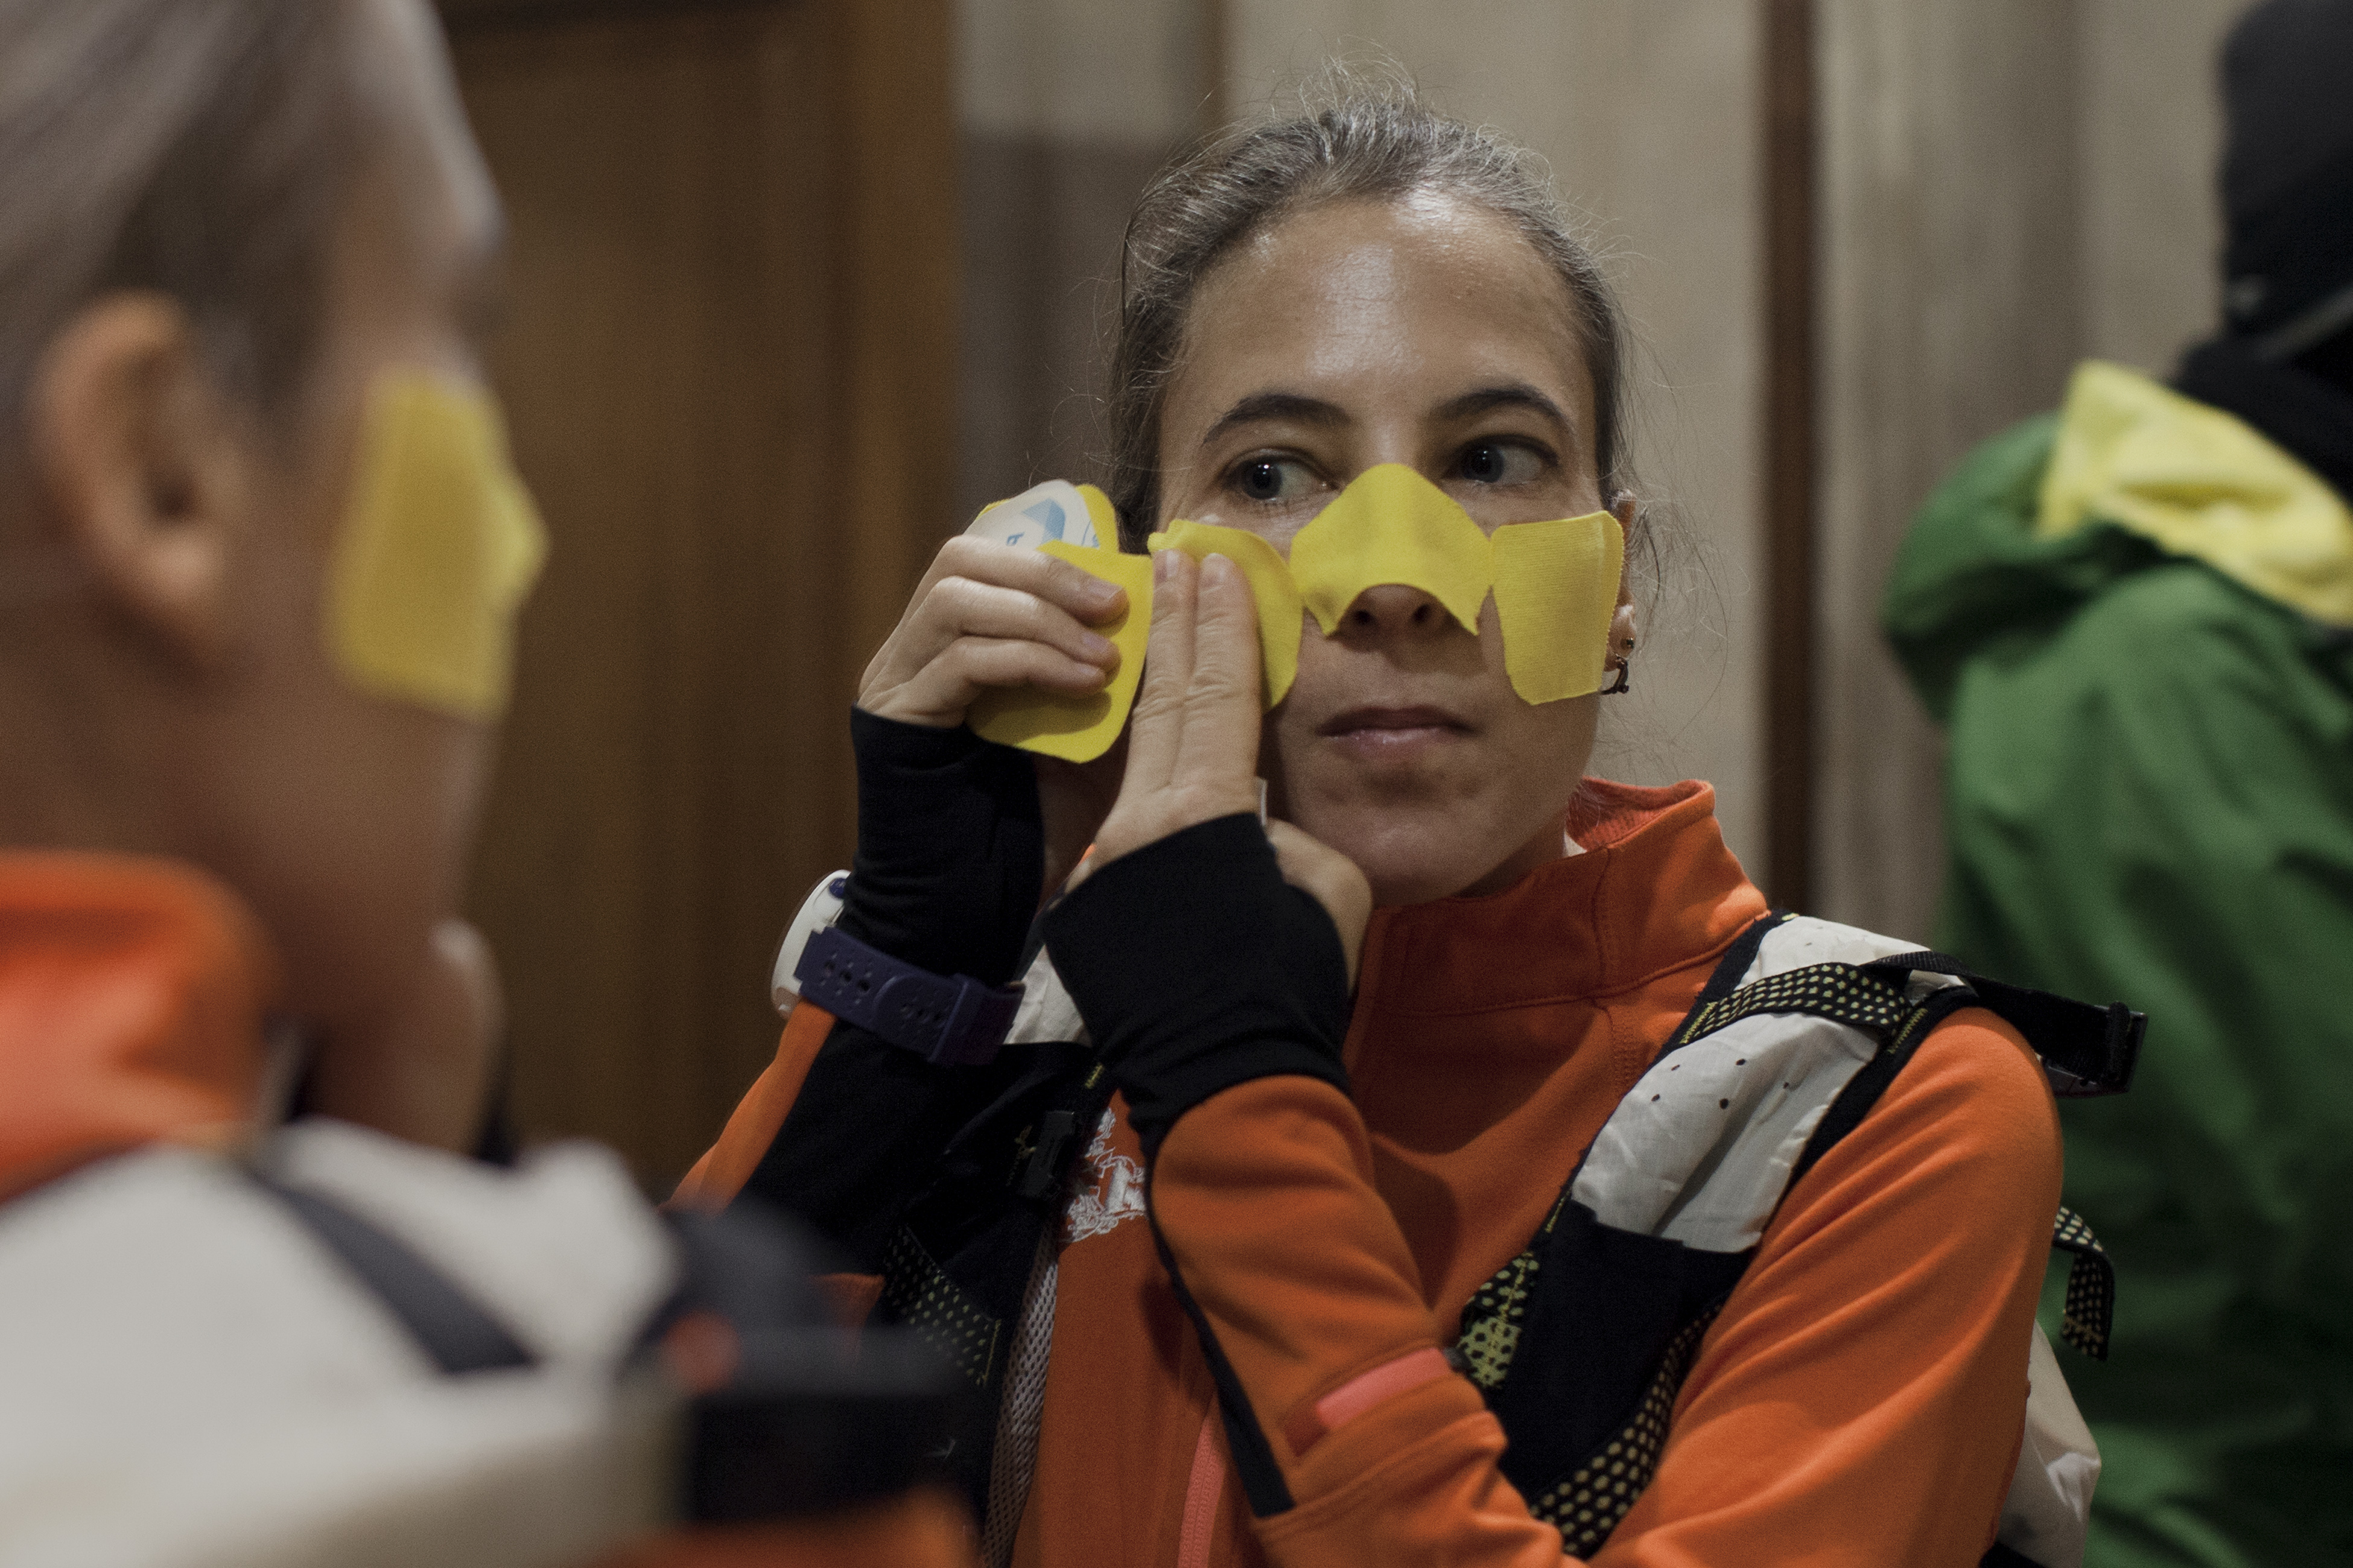 Véronique Messina, a runner from France, attaches athletic tape to protect her face from frostbite, on the morning of the Baikal Ice Marathon.